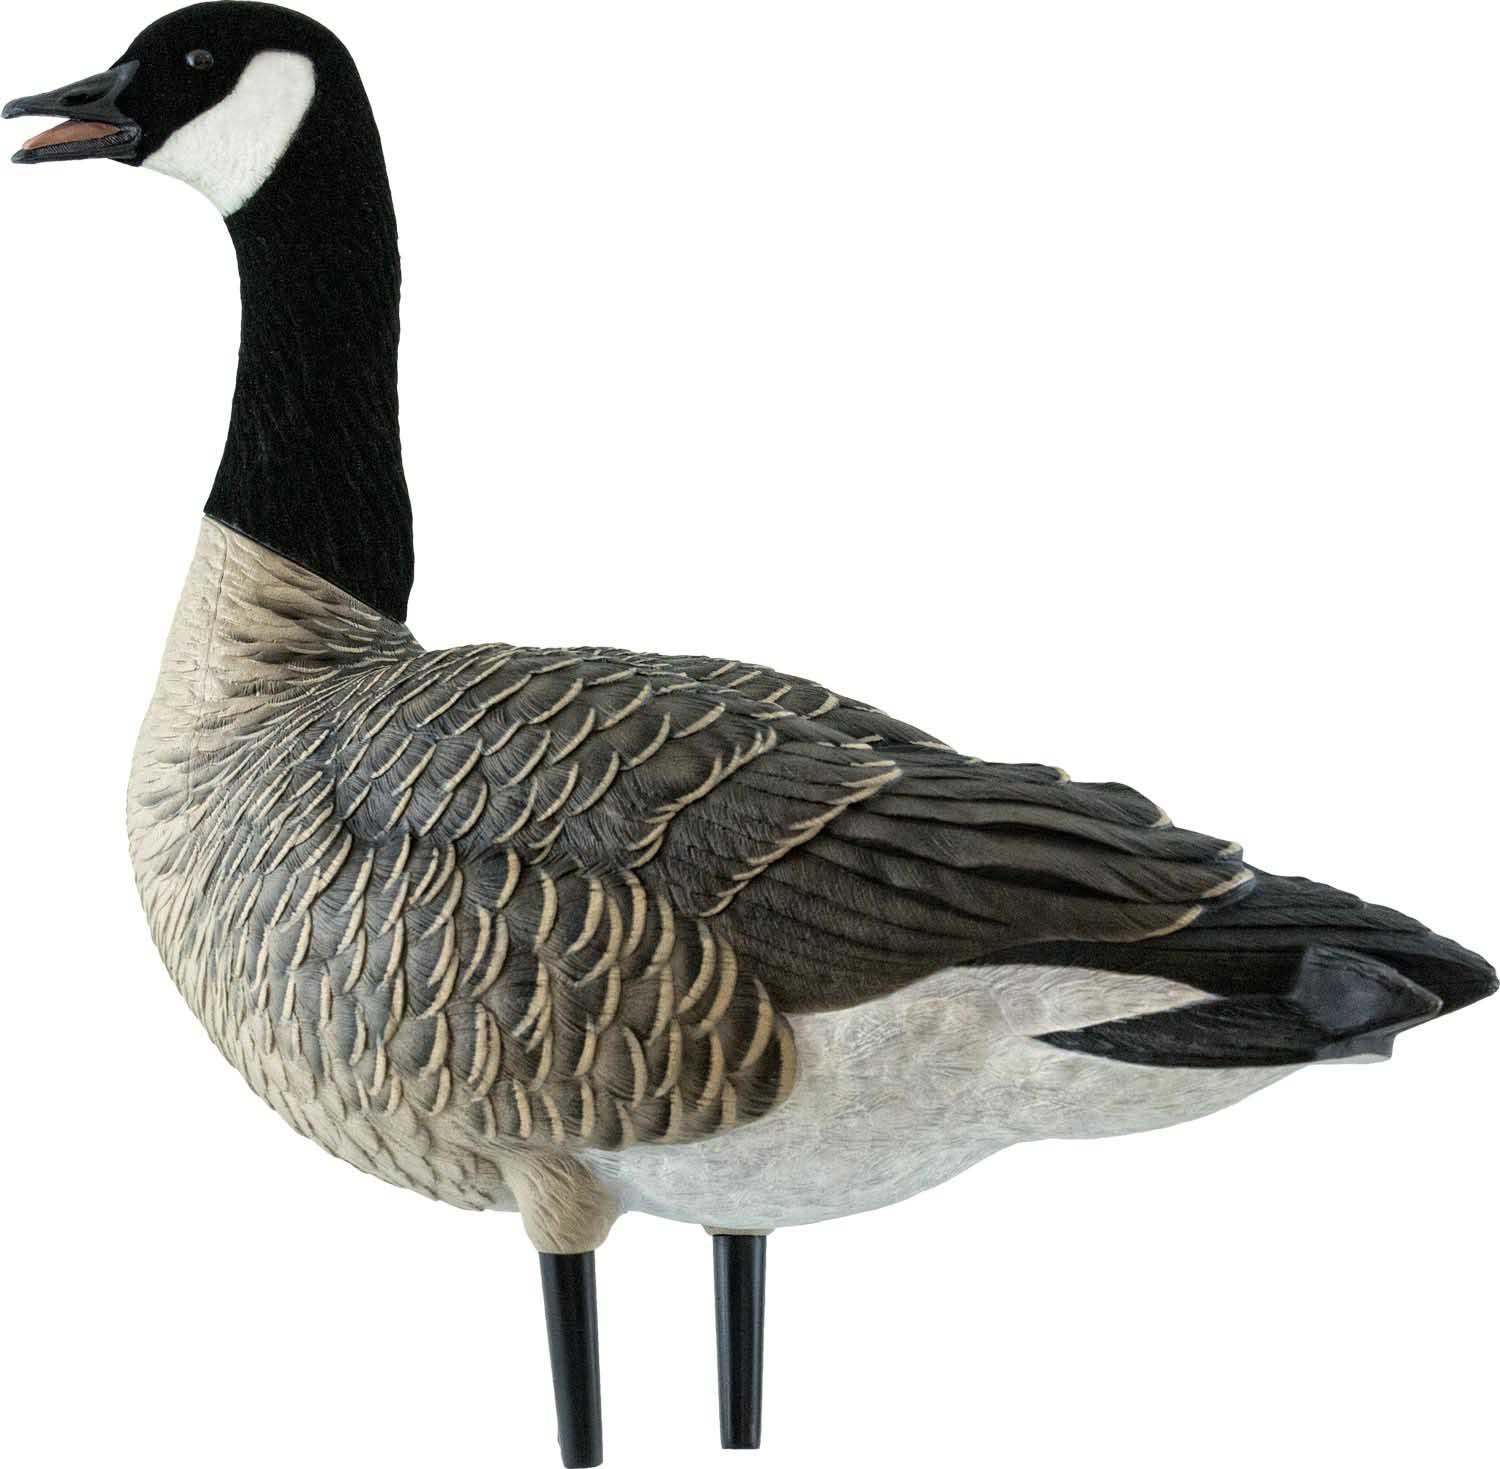 Avian-X AXF Outfitter Lesser Pack Fully Flocked Decoys, 12 Pack with Slotted Decoy Bag_10.jpg